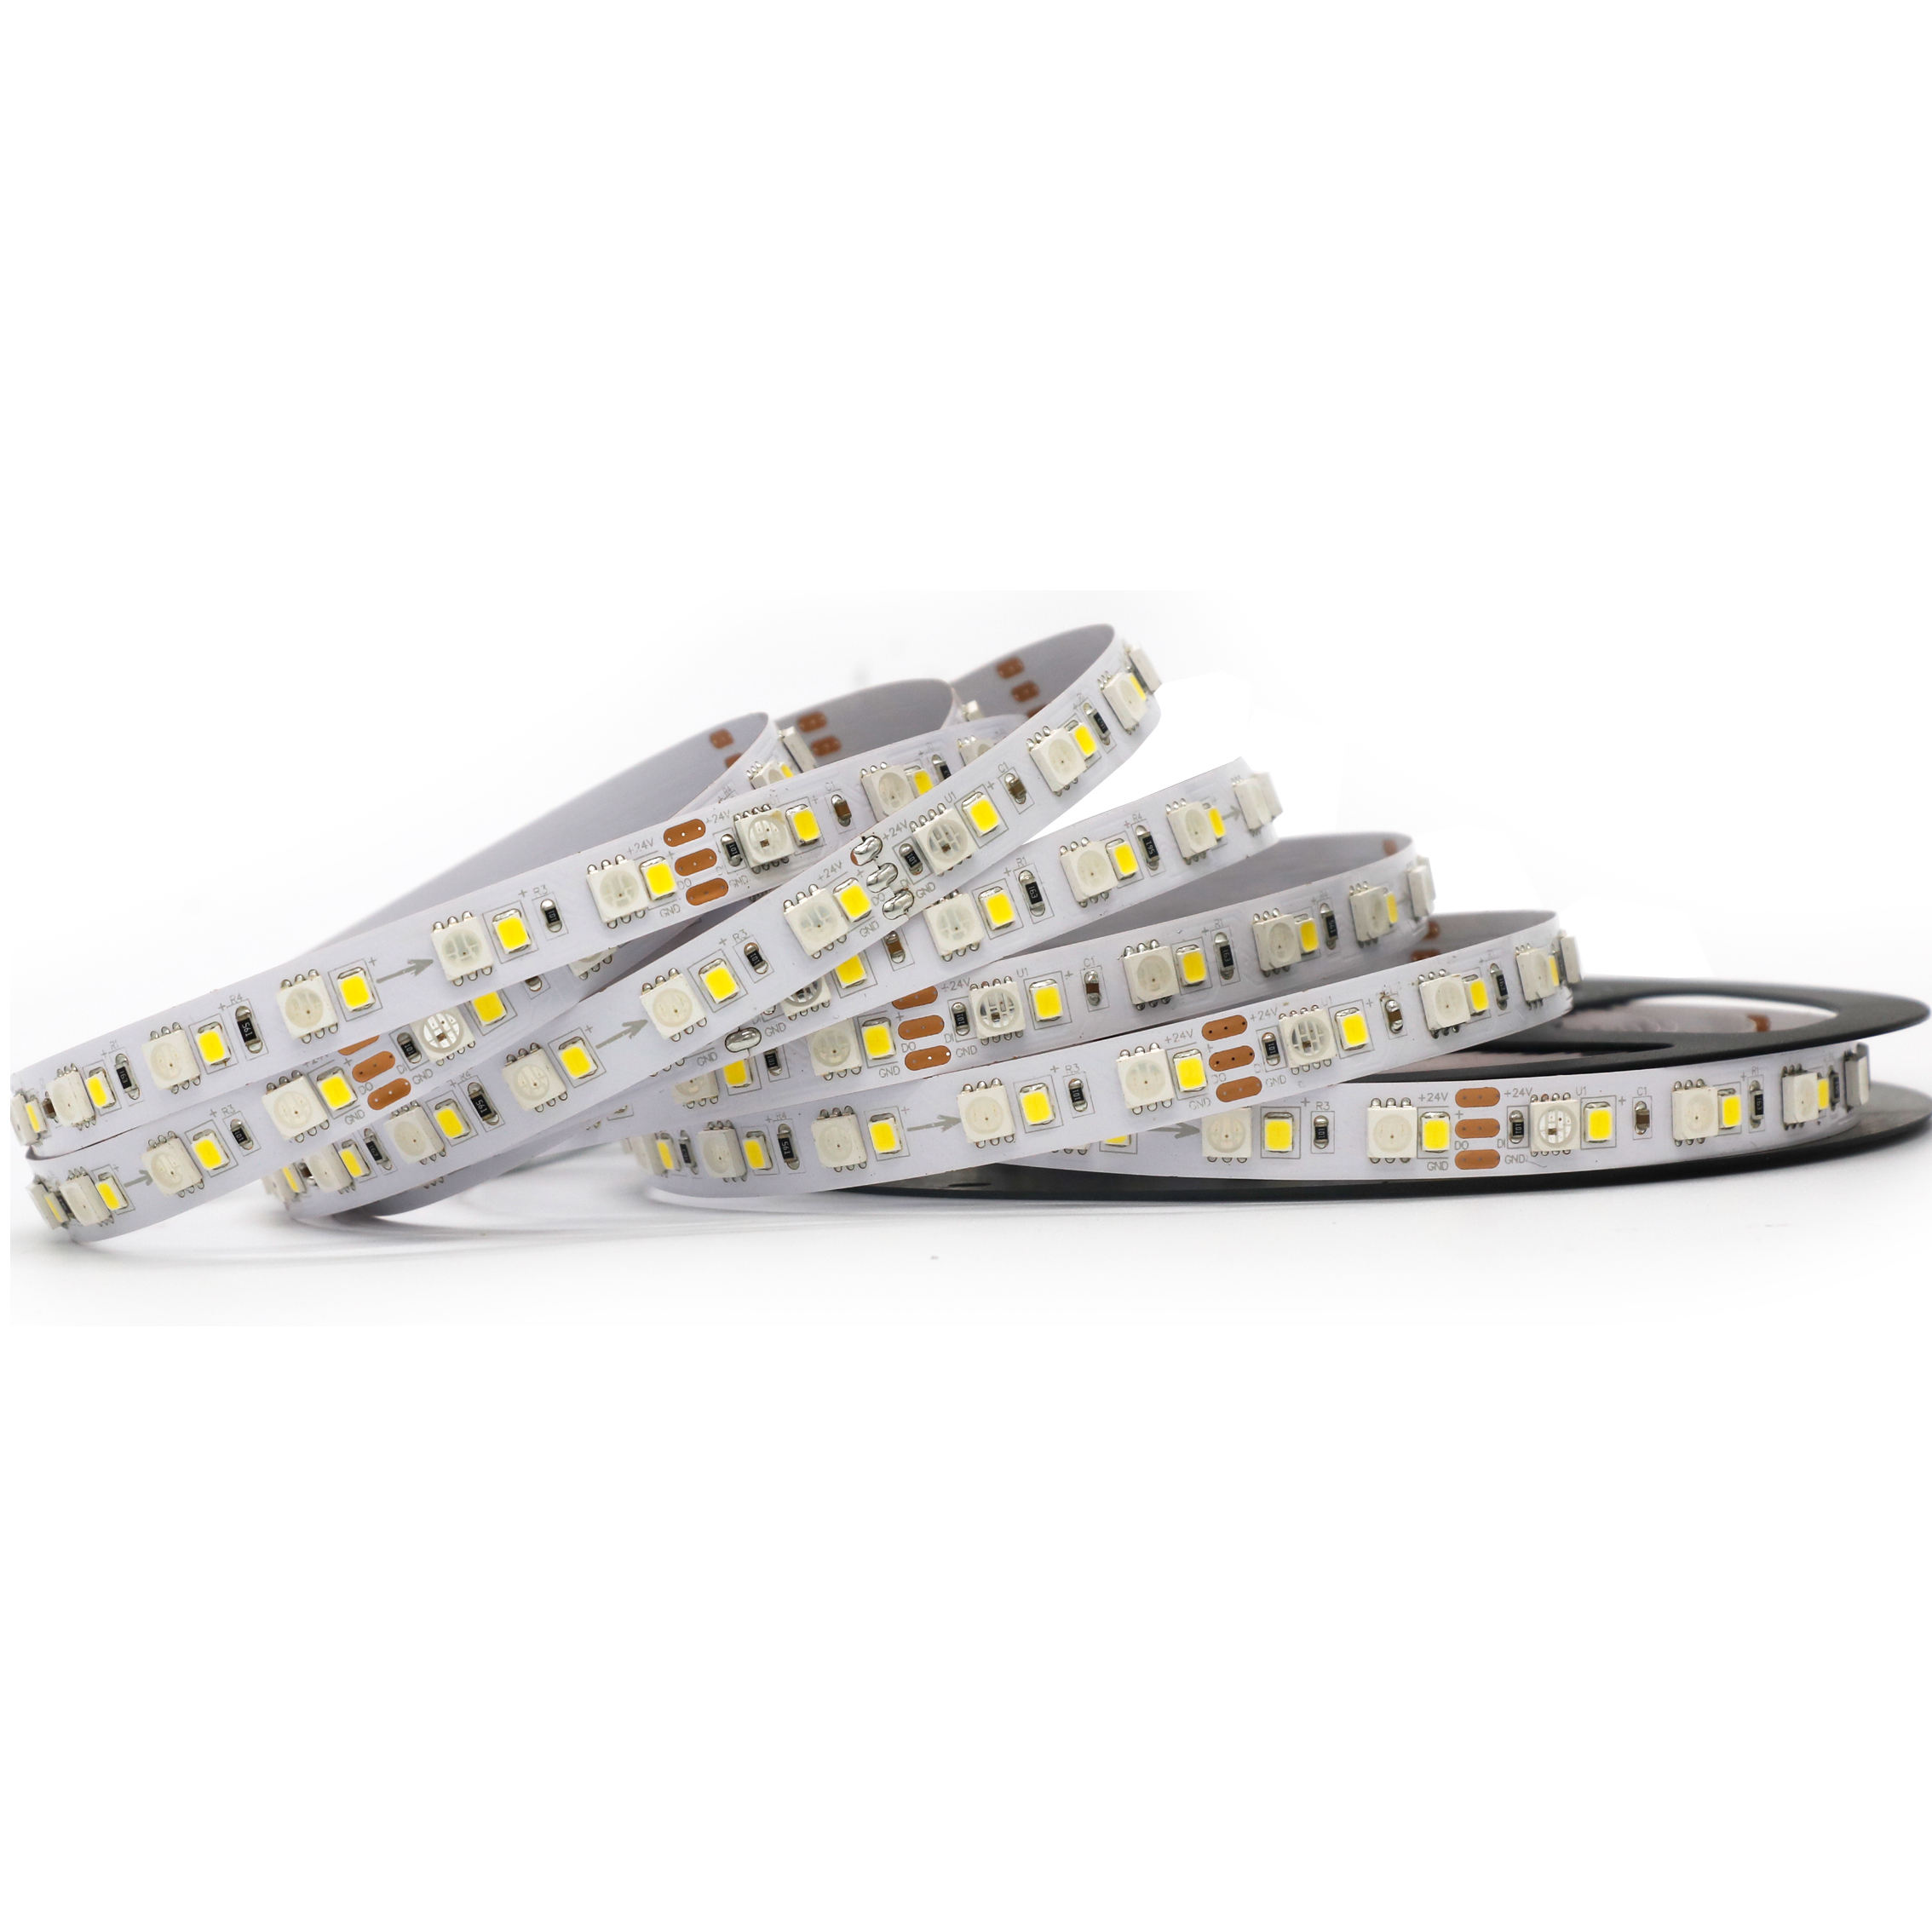 Led Strip Fabriek Groothandel 12 V 24 V 5050 Rgbw 4in1 Led Backlight Streep In Voorraad